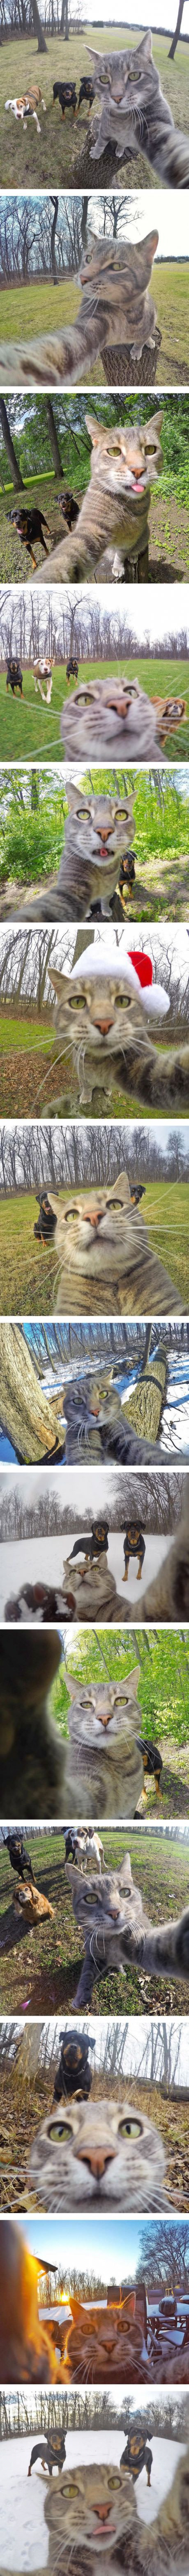 Meet Manny: The Selfie Taking Cat